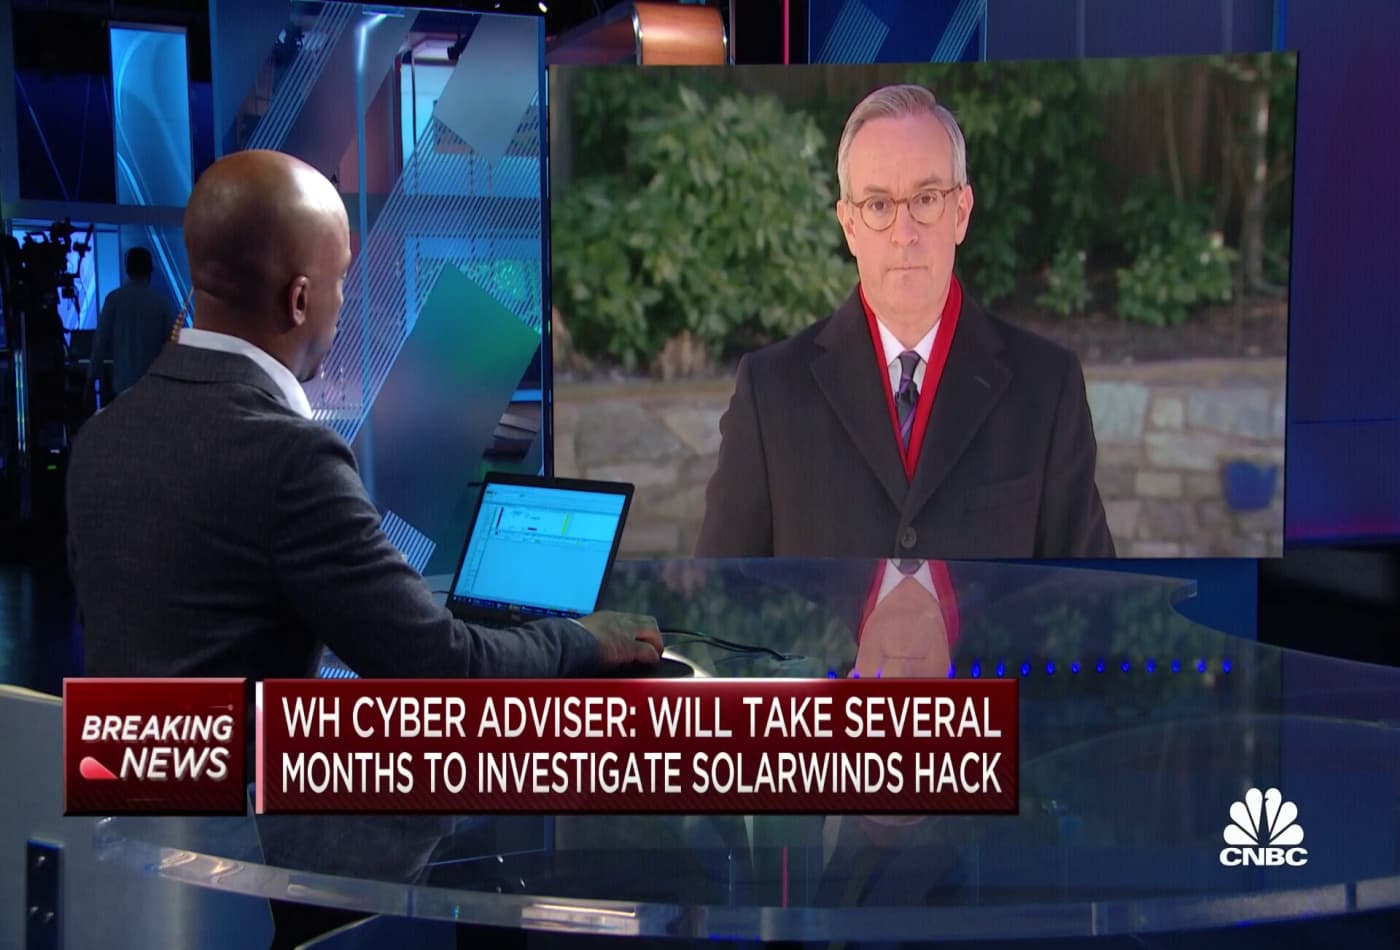 WH cyber adviser: SolarWinds Hack compromised 9 agencies, about 100 private companies